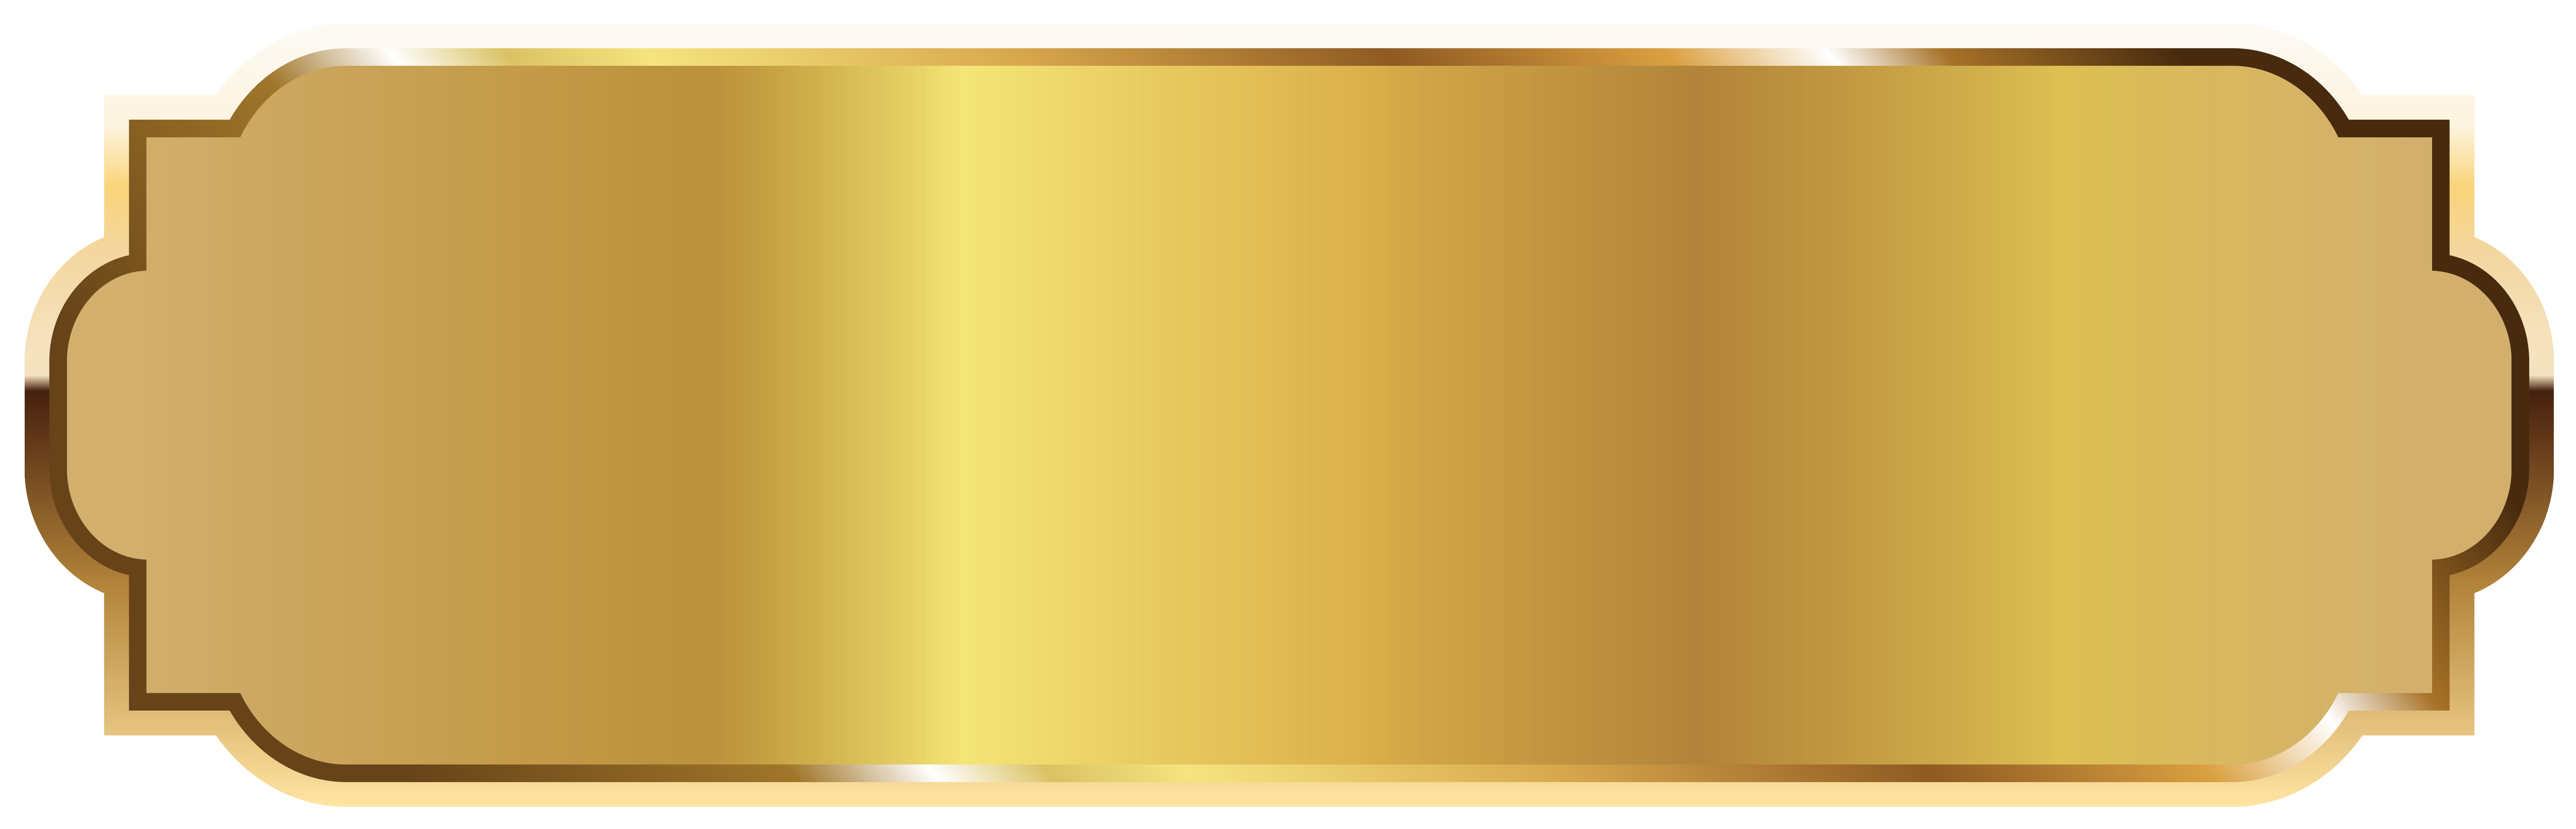 Gold png. Label template picture gallery